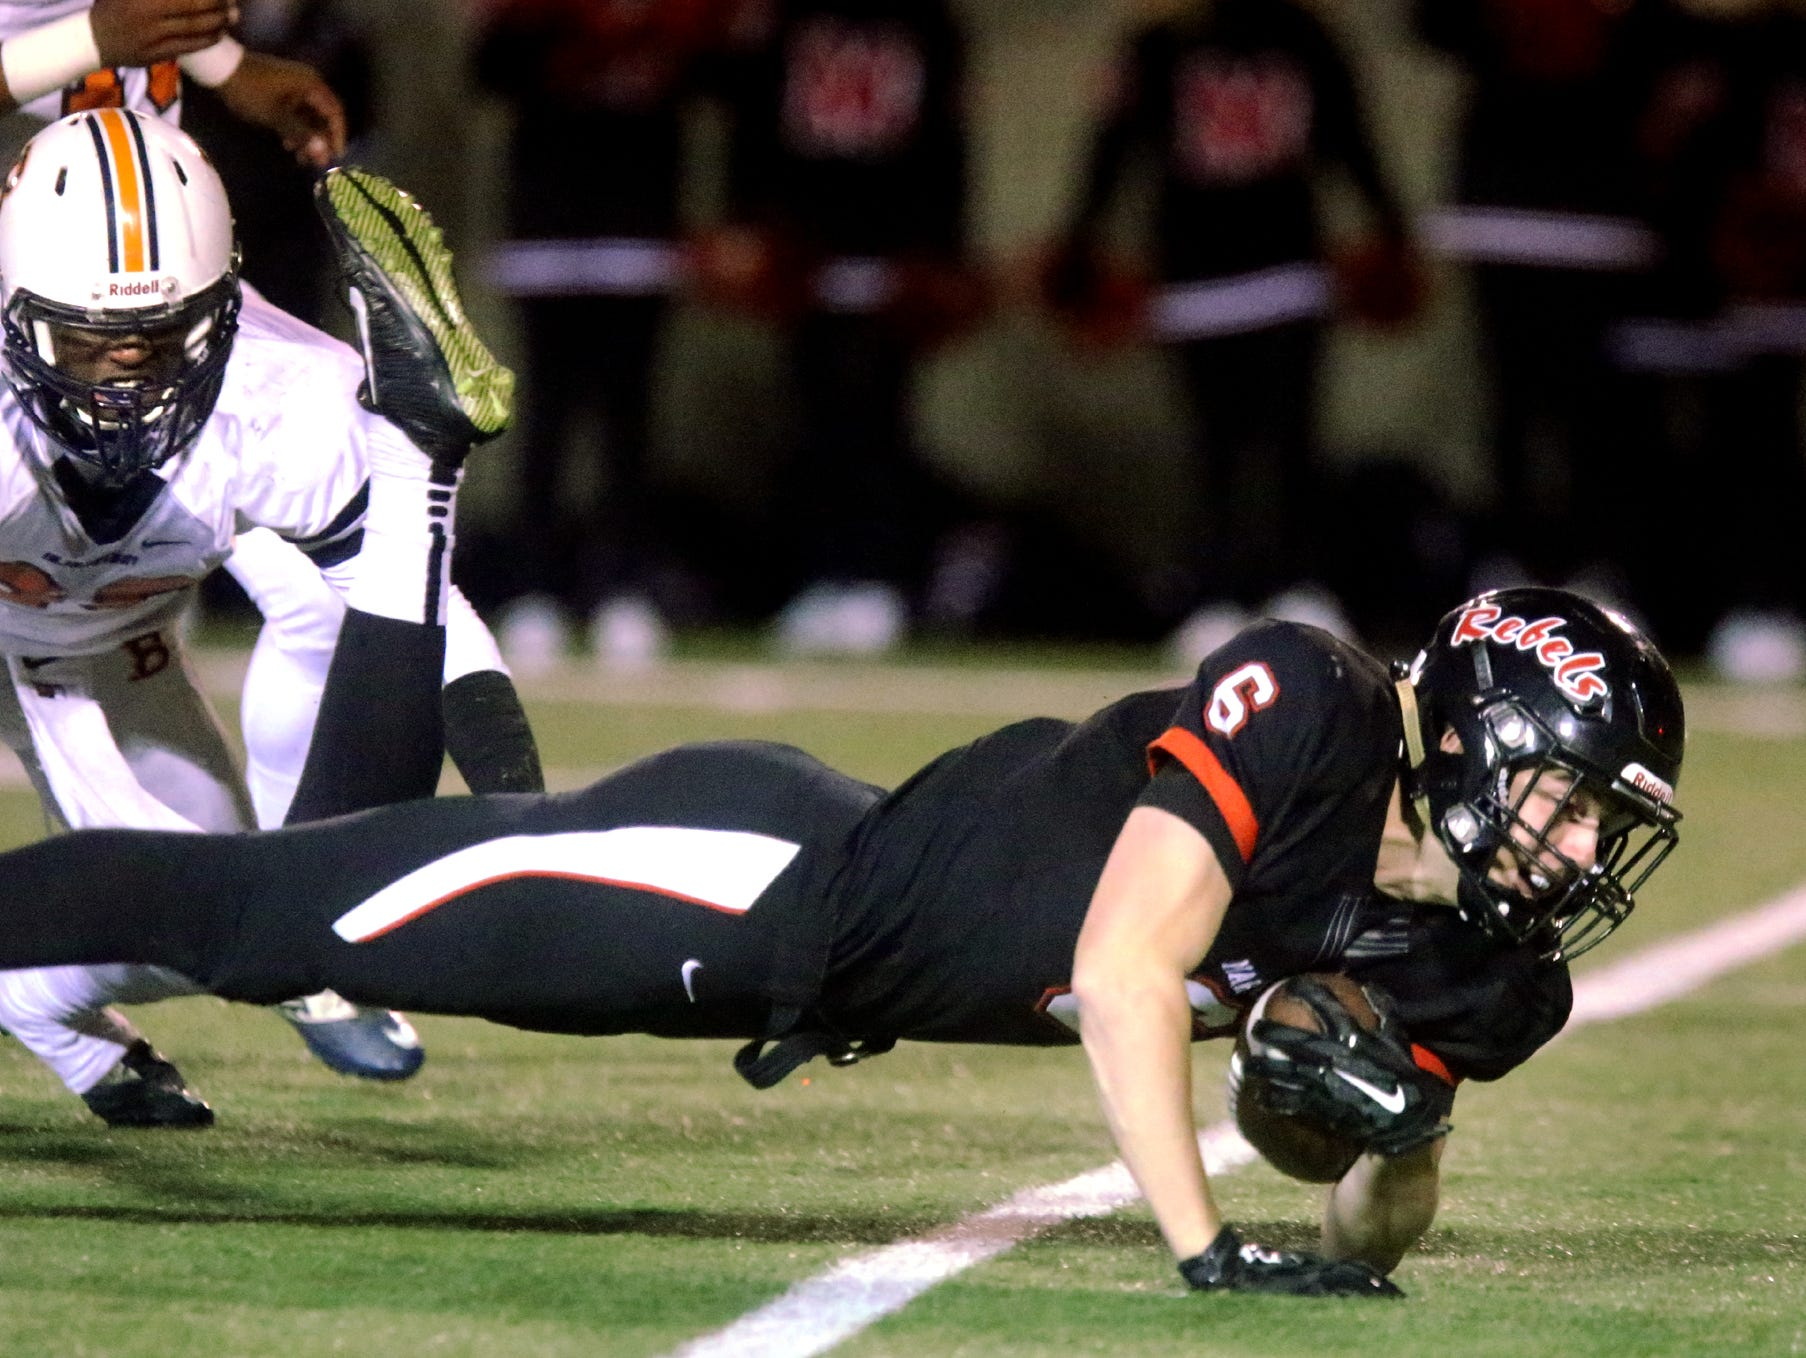 Maryville's Kelby Brock (6) dives for extra yardage during the quarterfinal game against Blackman, at Maryville, on Friday, Nov. 20, 2015.